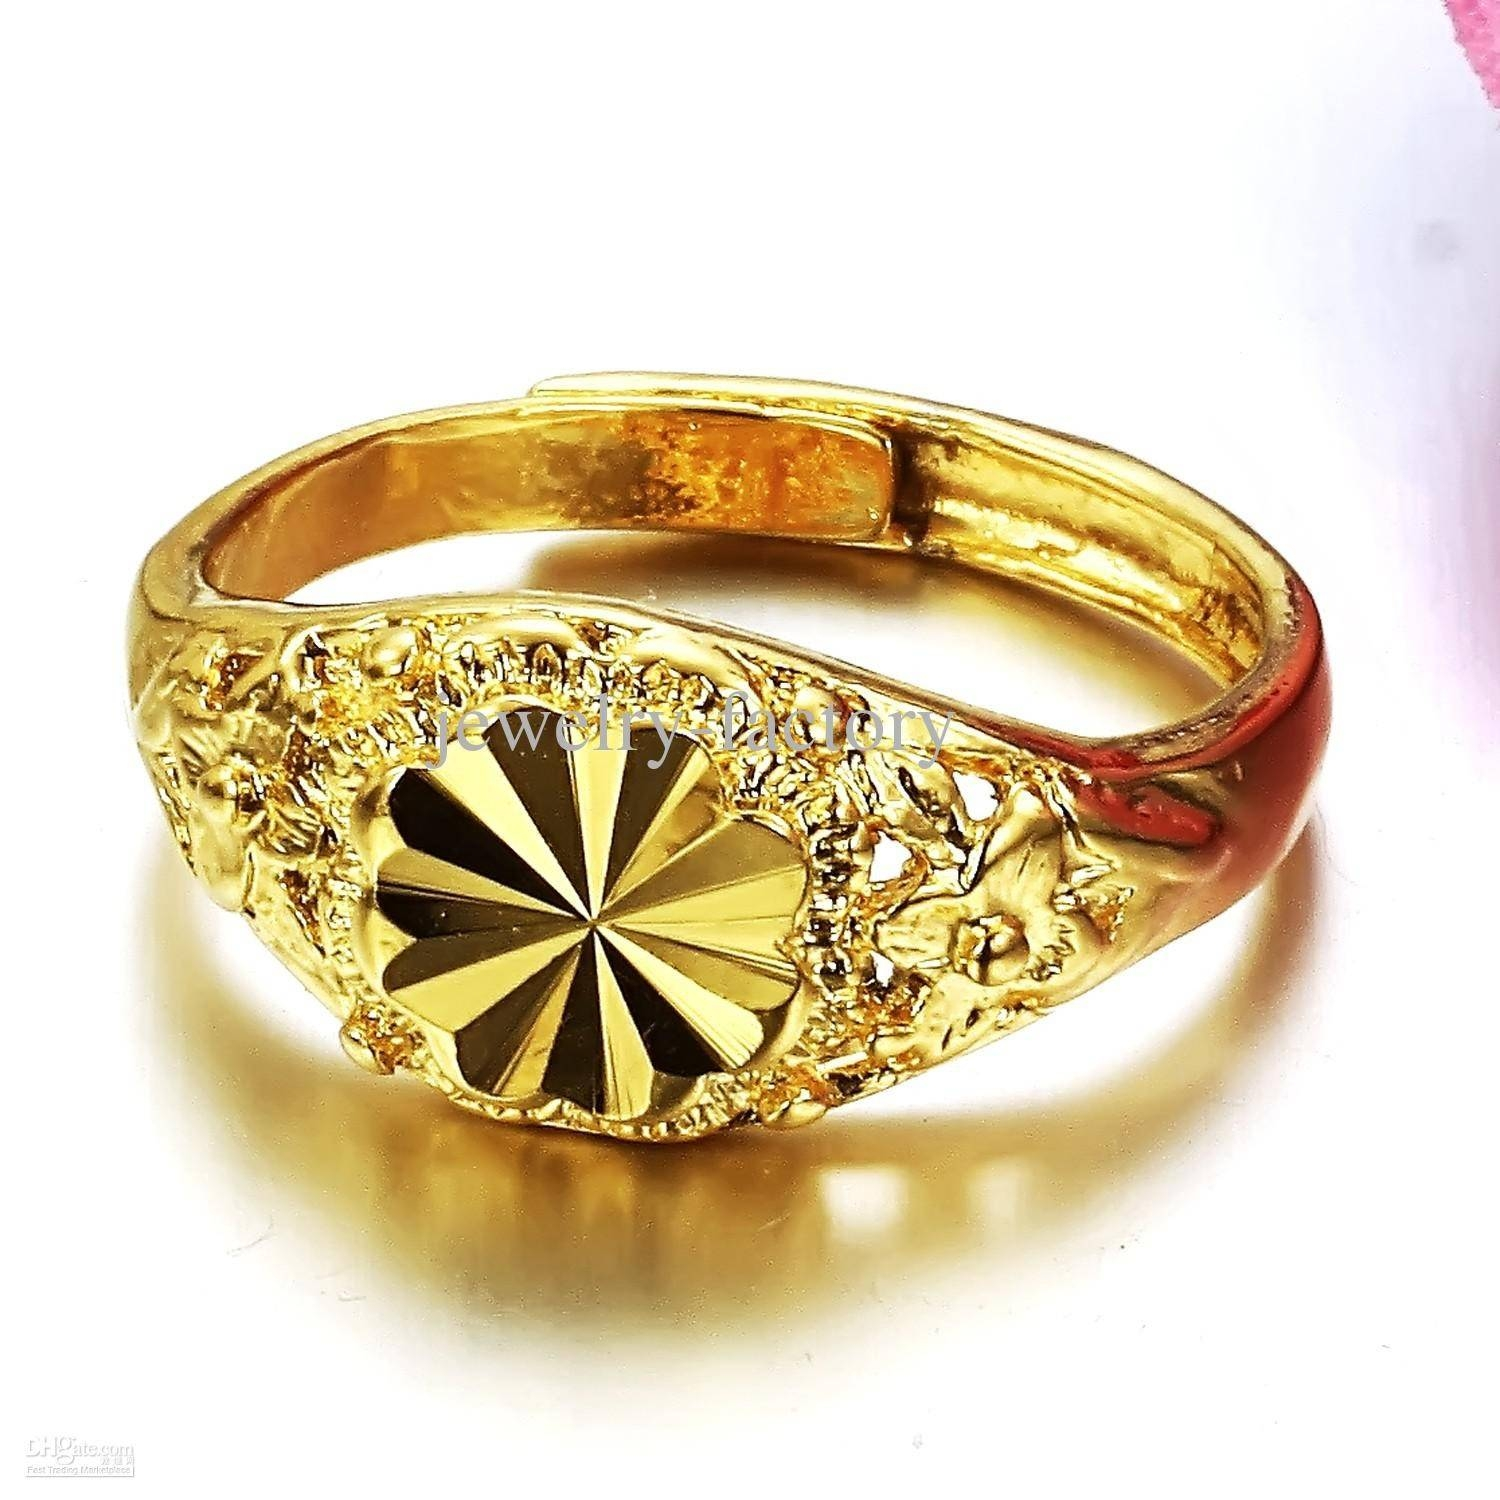 Traditional Gold Engagement Rings | Lake Side Corrals Pertaining To Traditional Gold Engagement Rings (View 13 of 15)